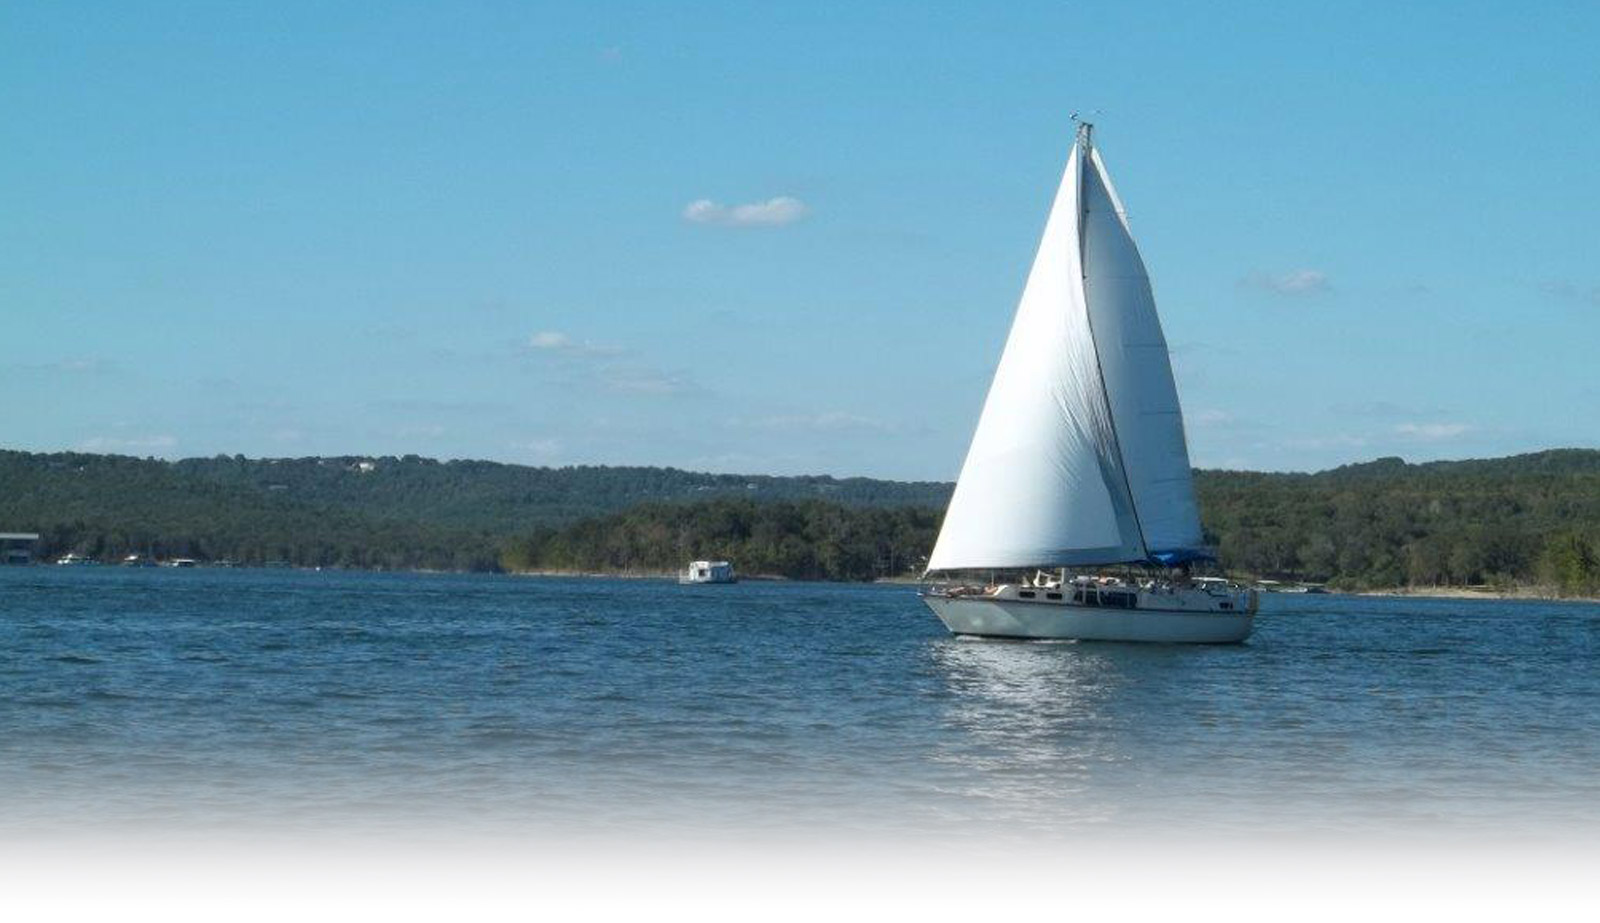 Yacht - Table Rock Lake